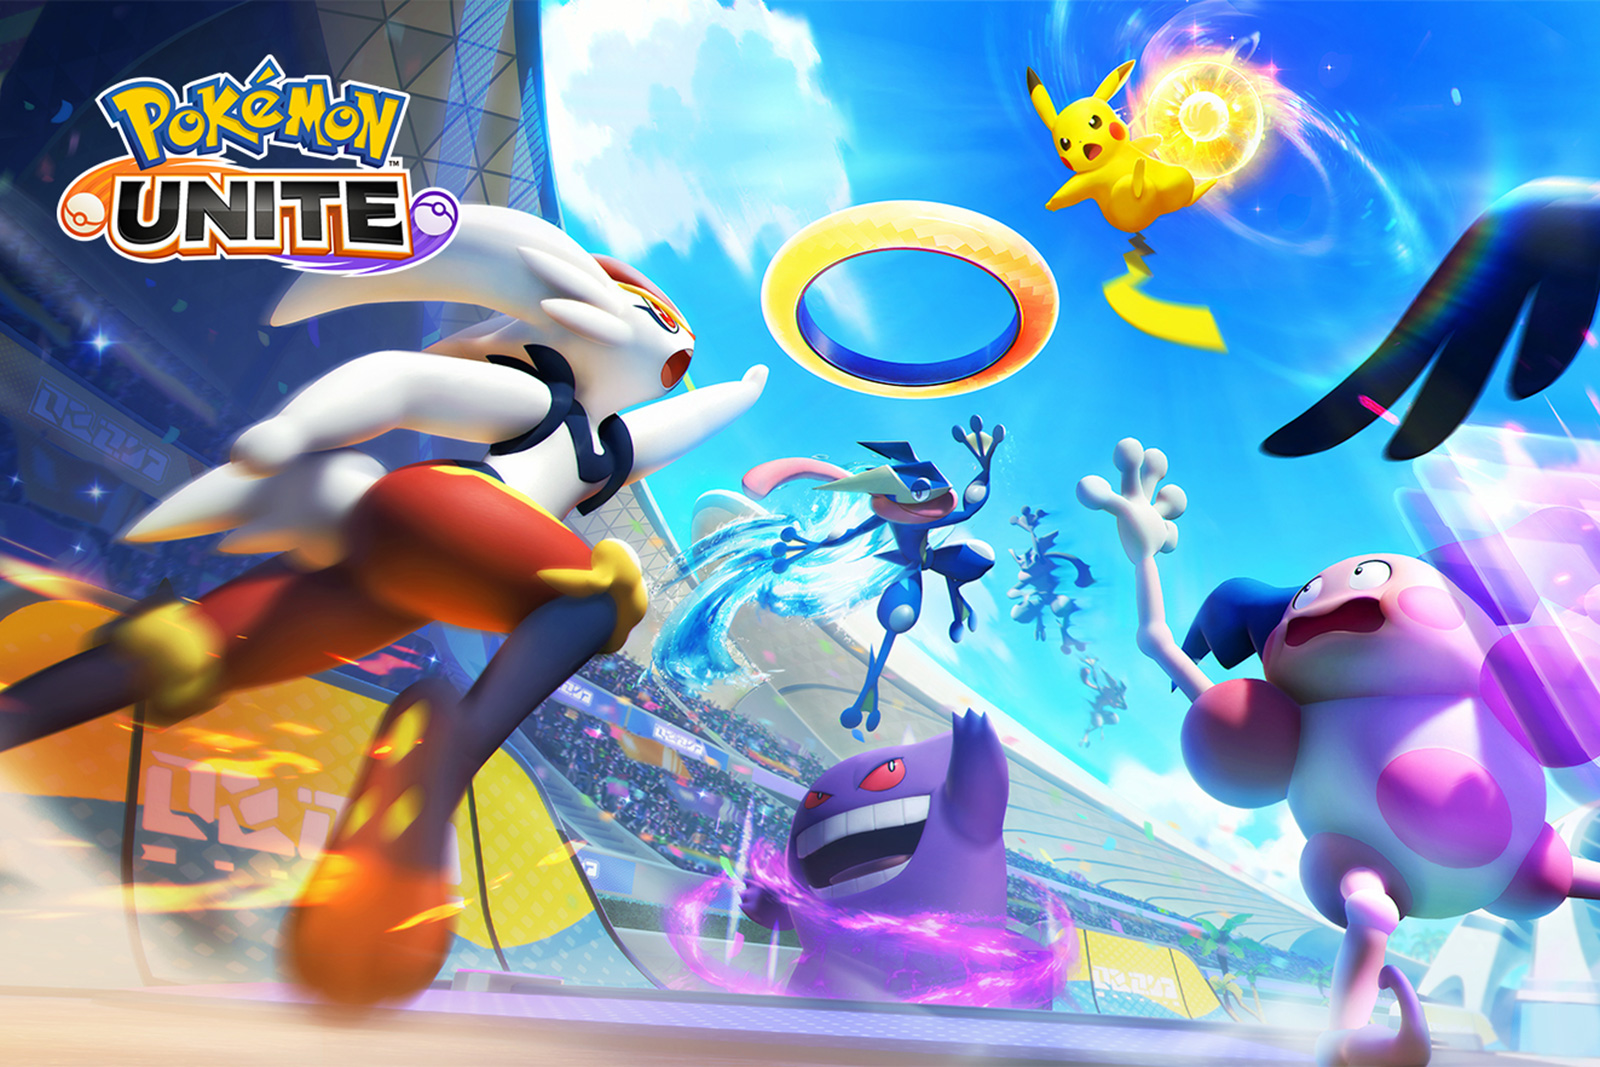 The free-to-start Pokémon MOBA arrives on Nintendo Switch in July, Digital Rumble, digitalrumble.com